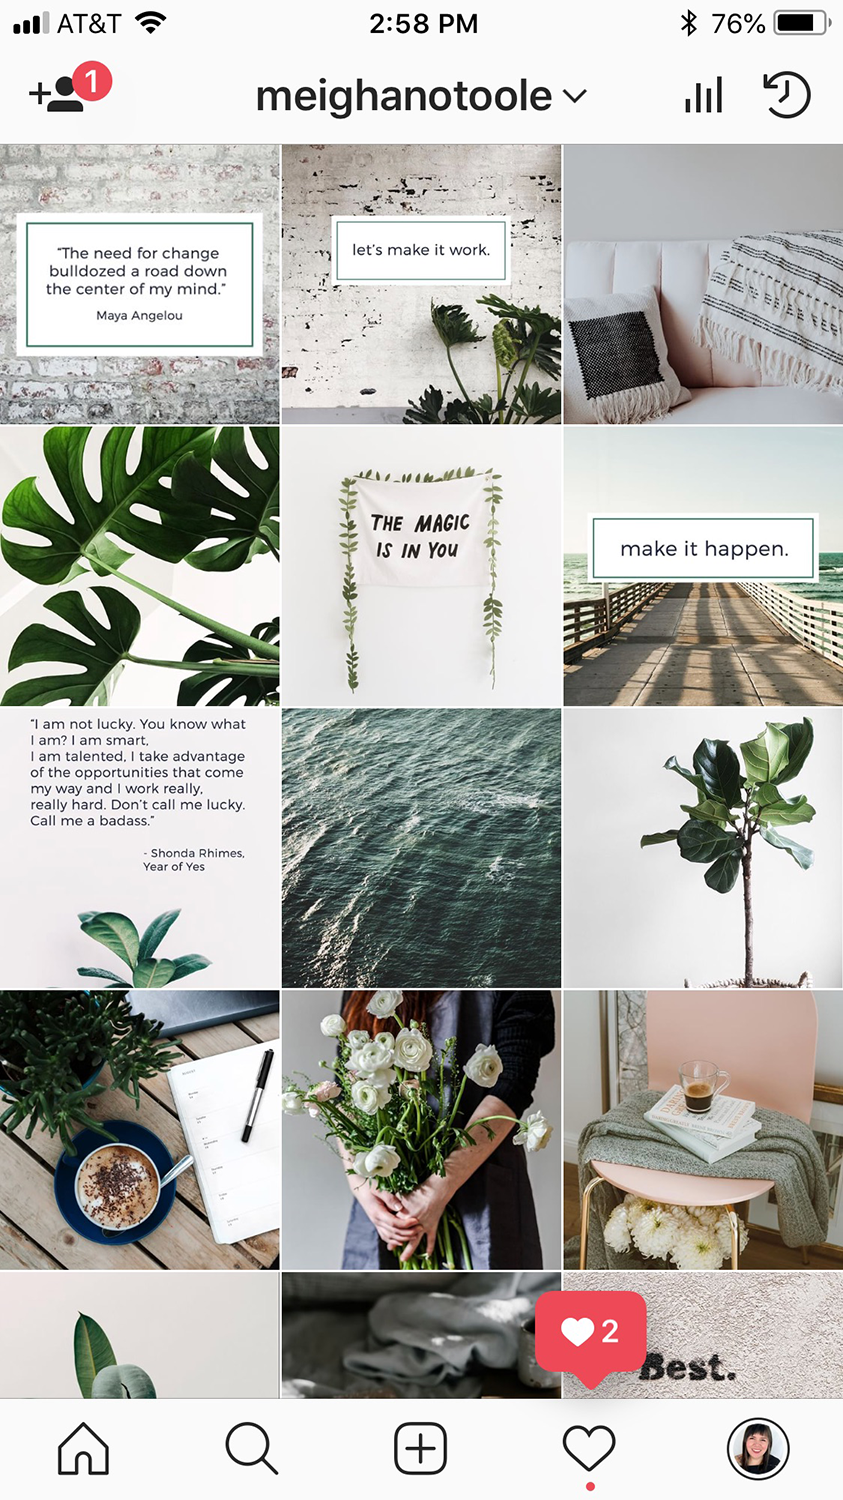 Having a visually cohesive grid is one of the best things you can do to attract followers.